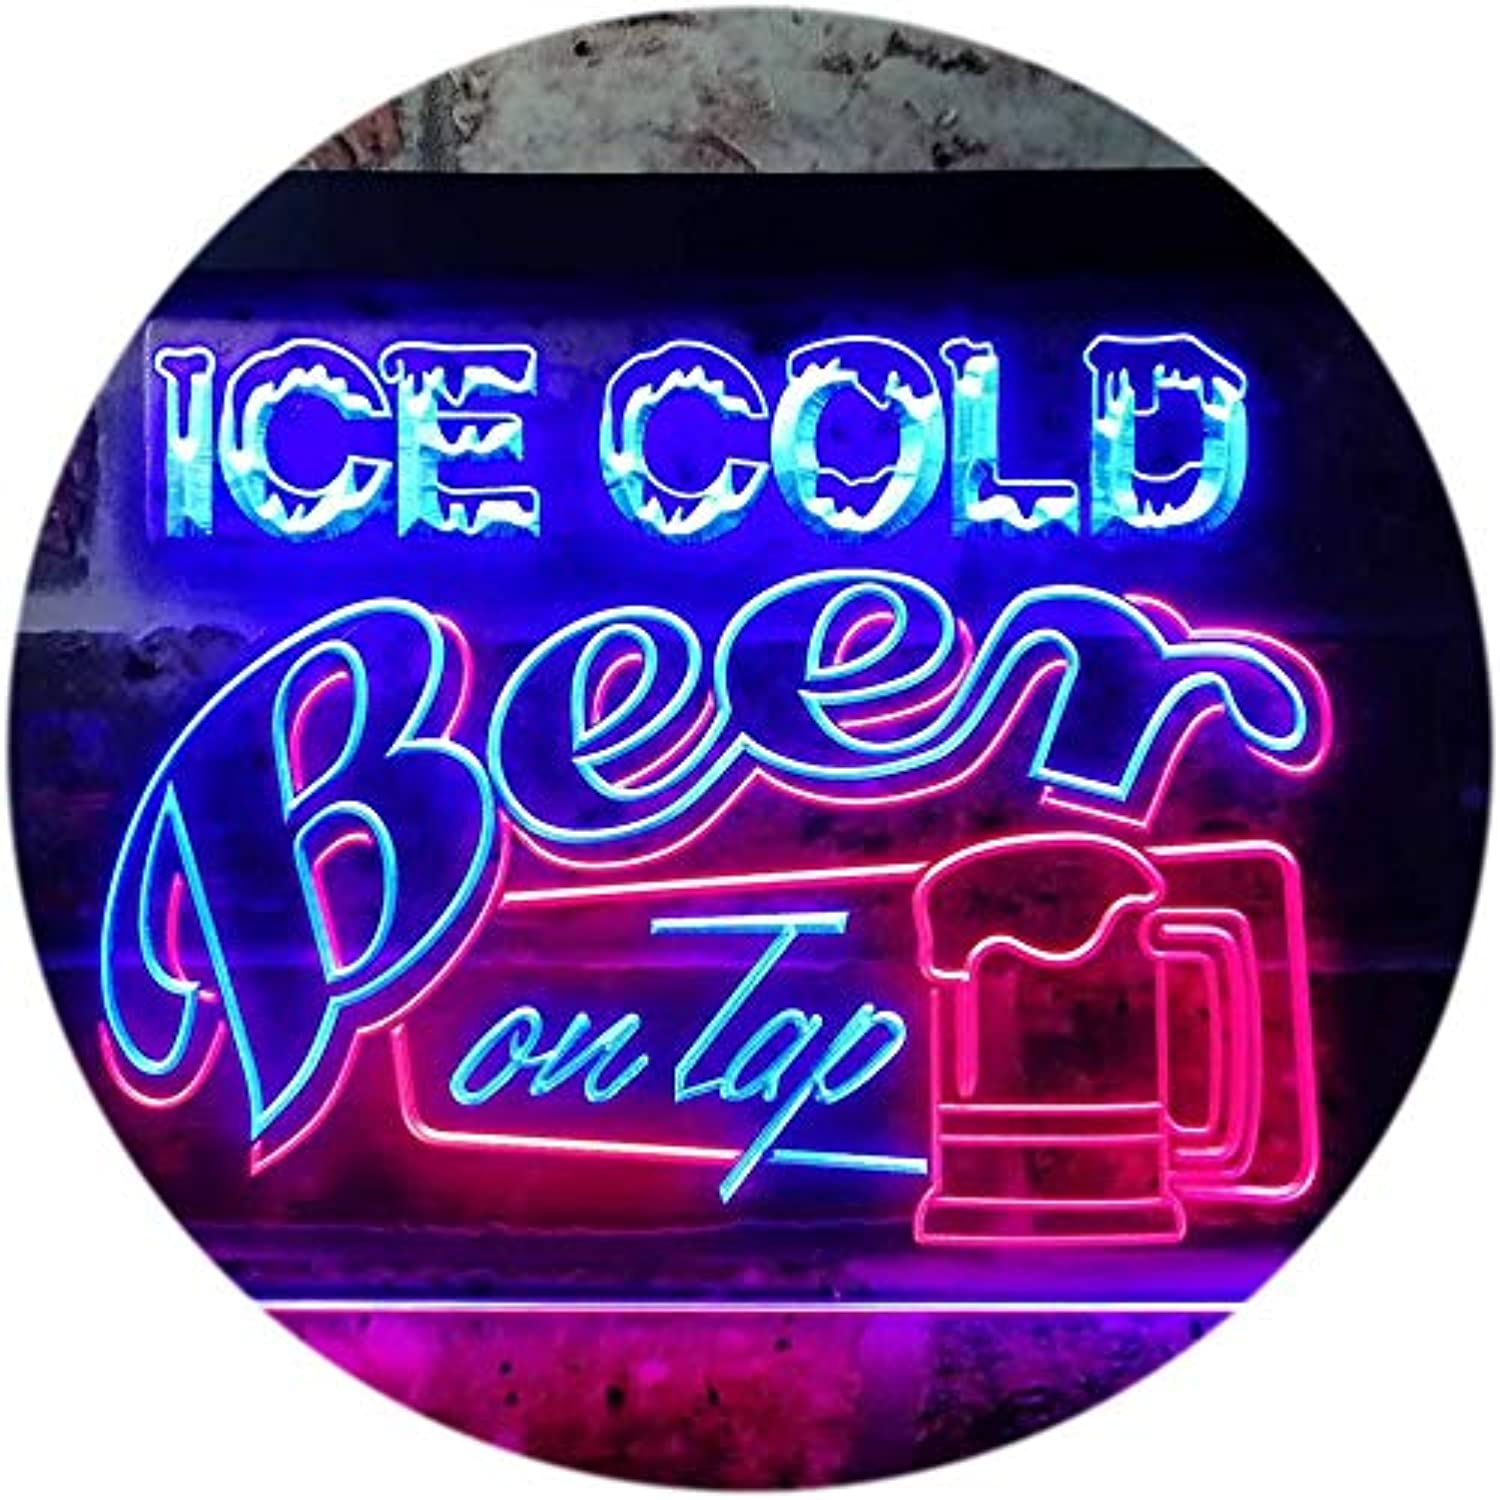 ADVPRO Ice Cold Beer On Tap Bar Club Dual Farbe LED Barlicht Neonlicht Lichtwerbung Neon Sign rot & Blau 400mm x 300mm st6s43-i0912-rb